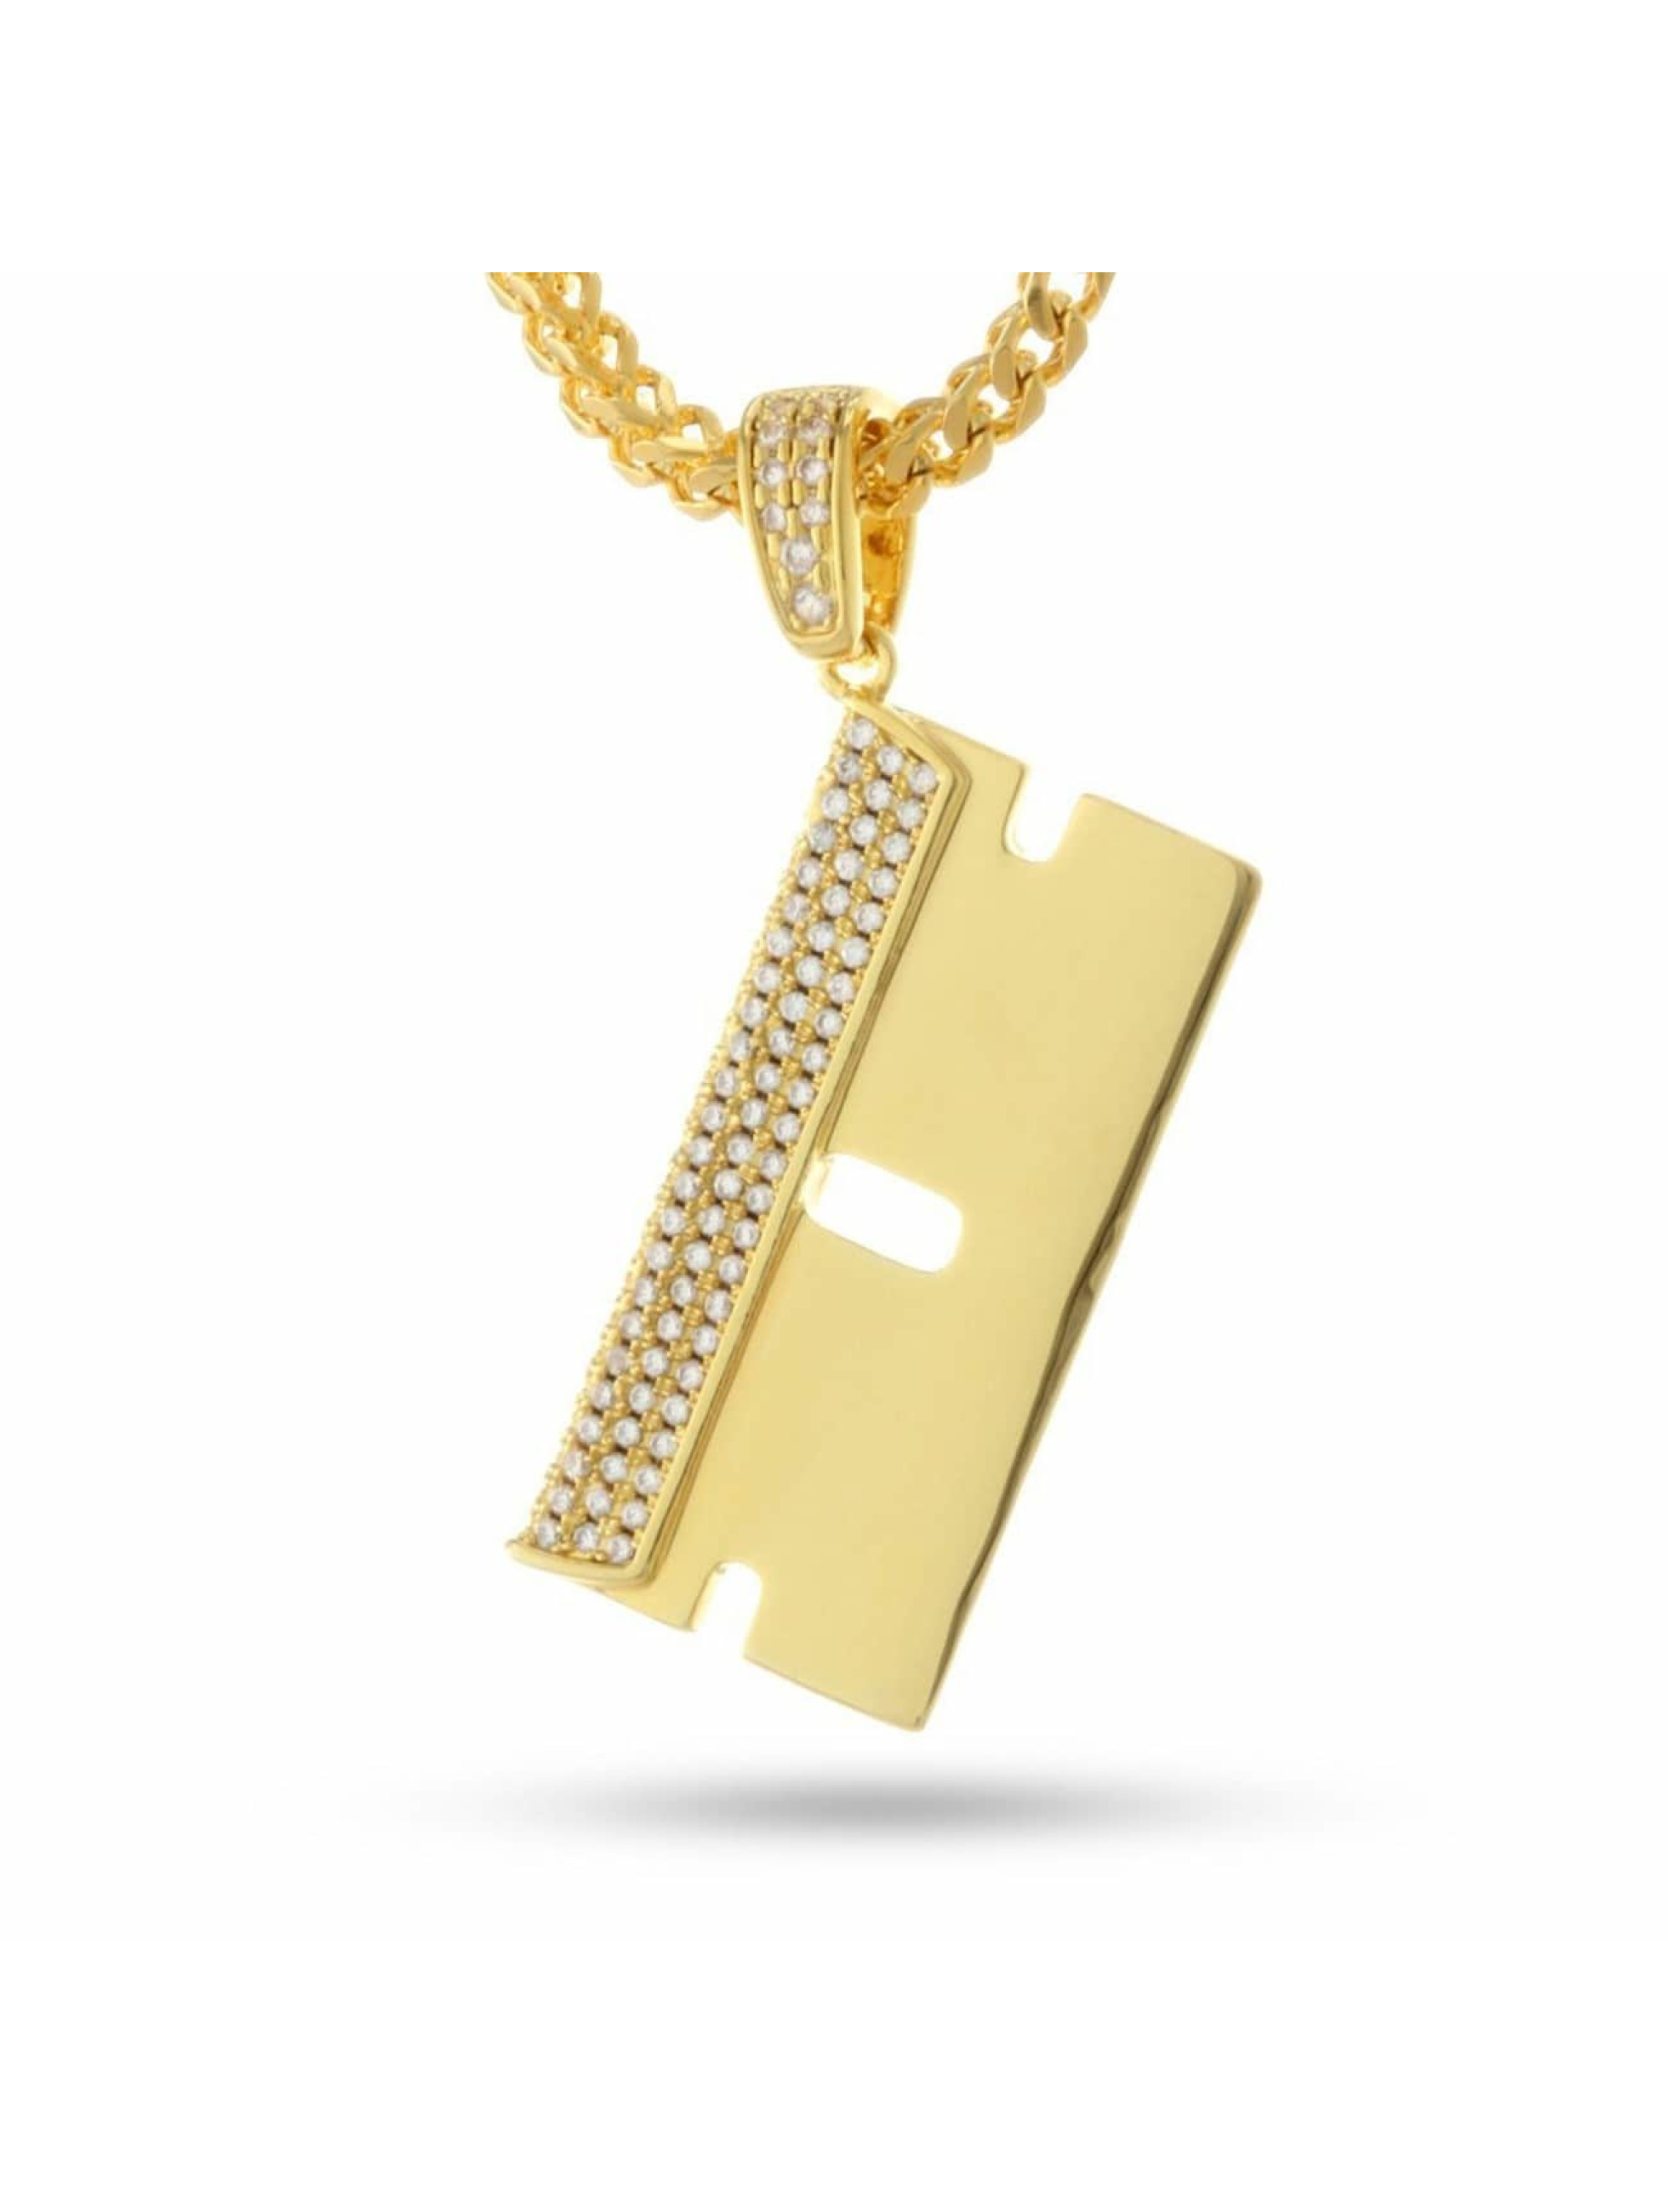 KING ICE Kette Gold_Plated CZ Barber RZR Blade goldfarben